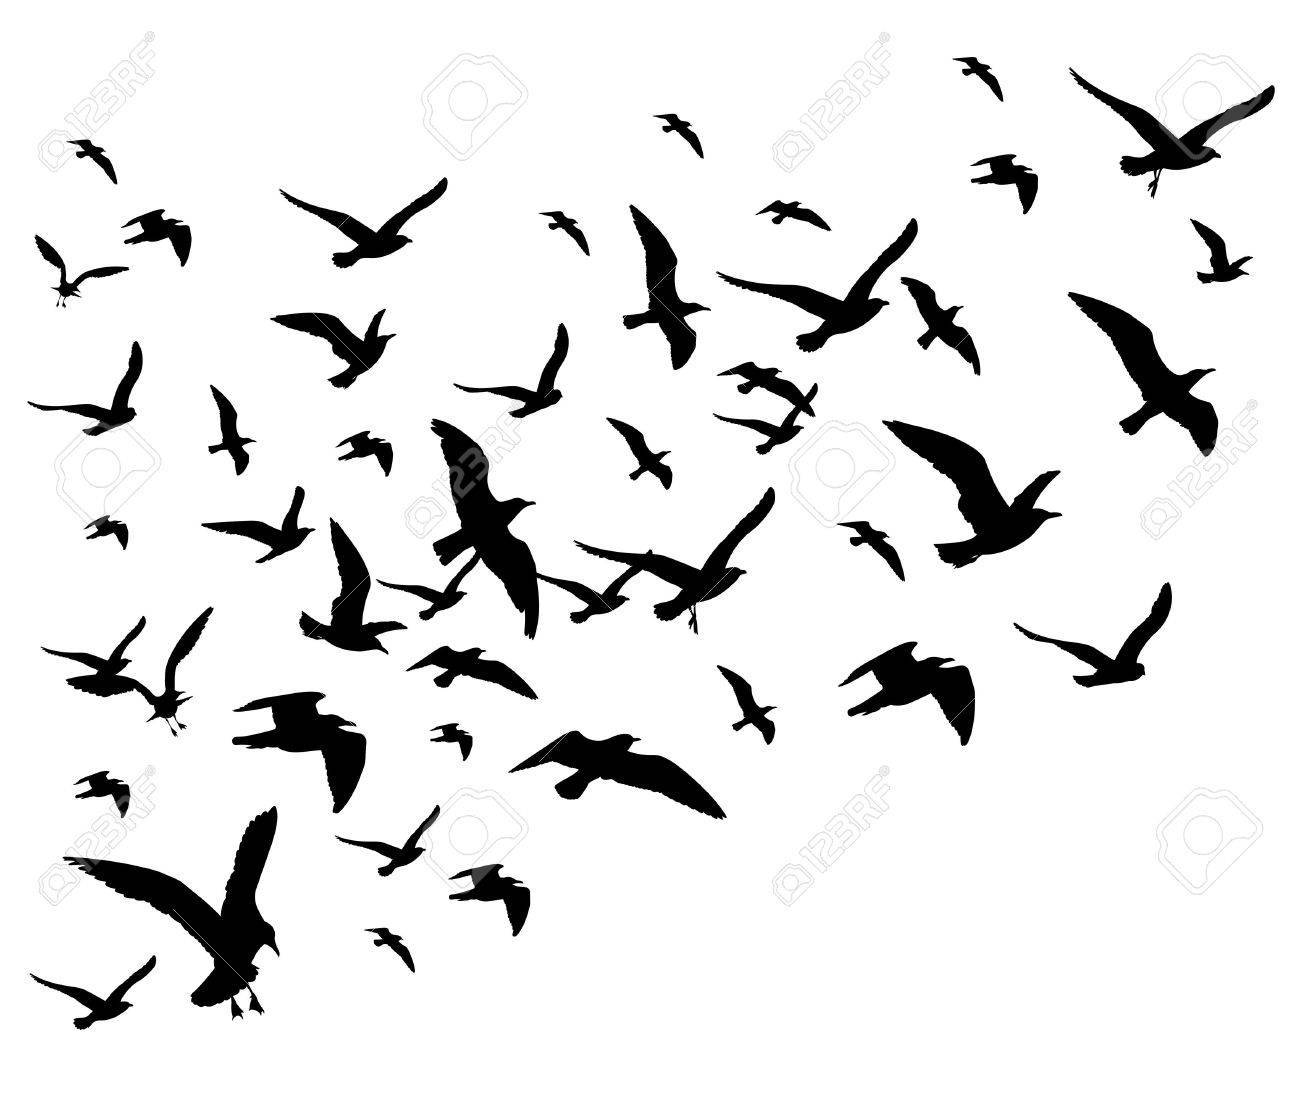 Flying birds clipart black and white 3 » Clipart Portal.